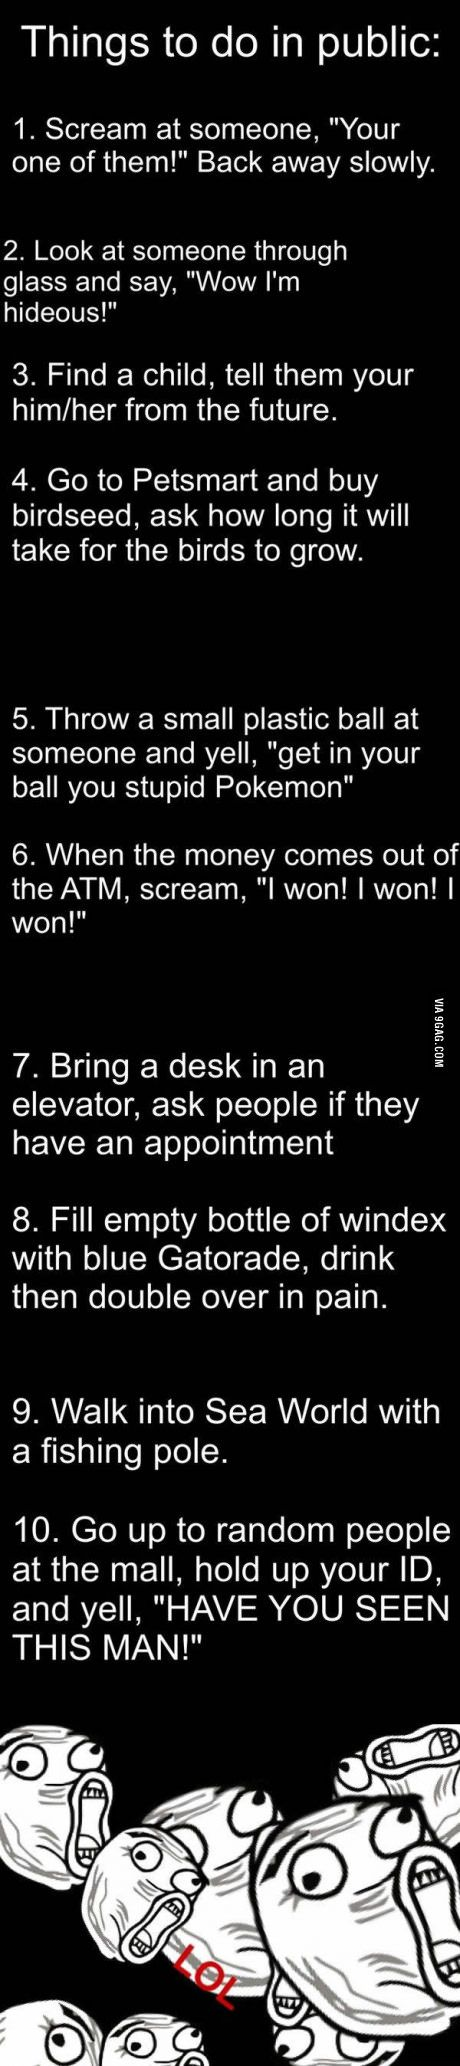 Things to do in public